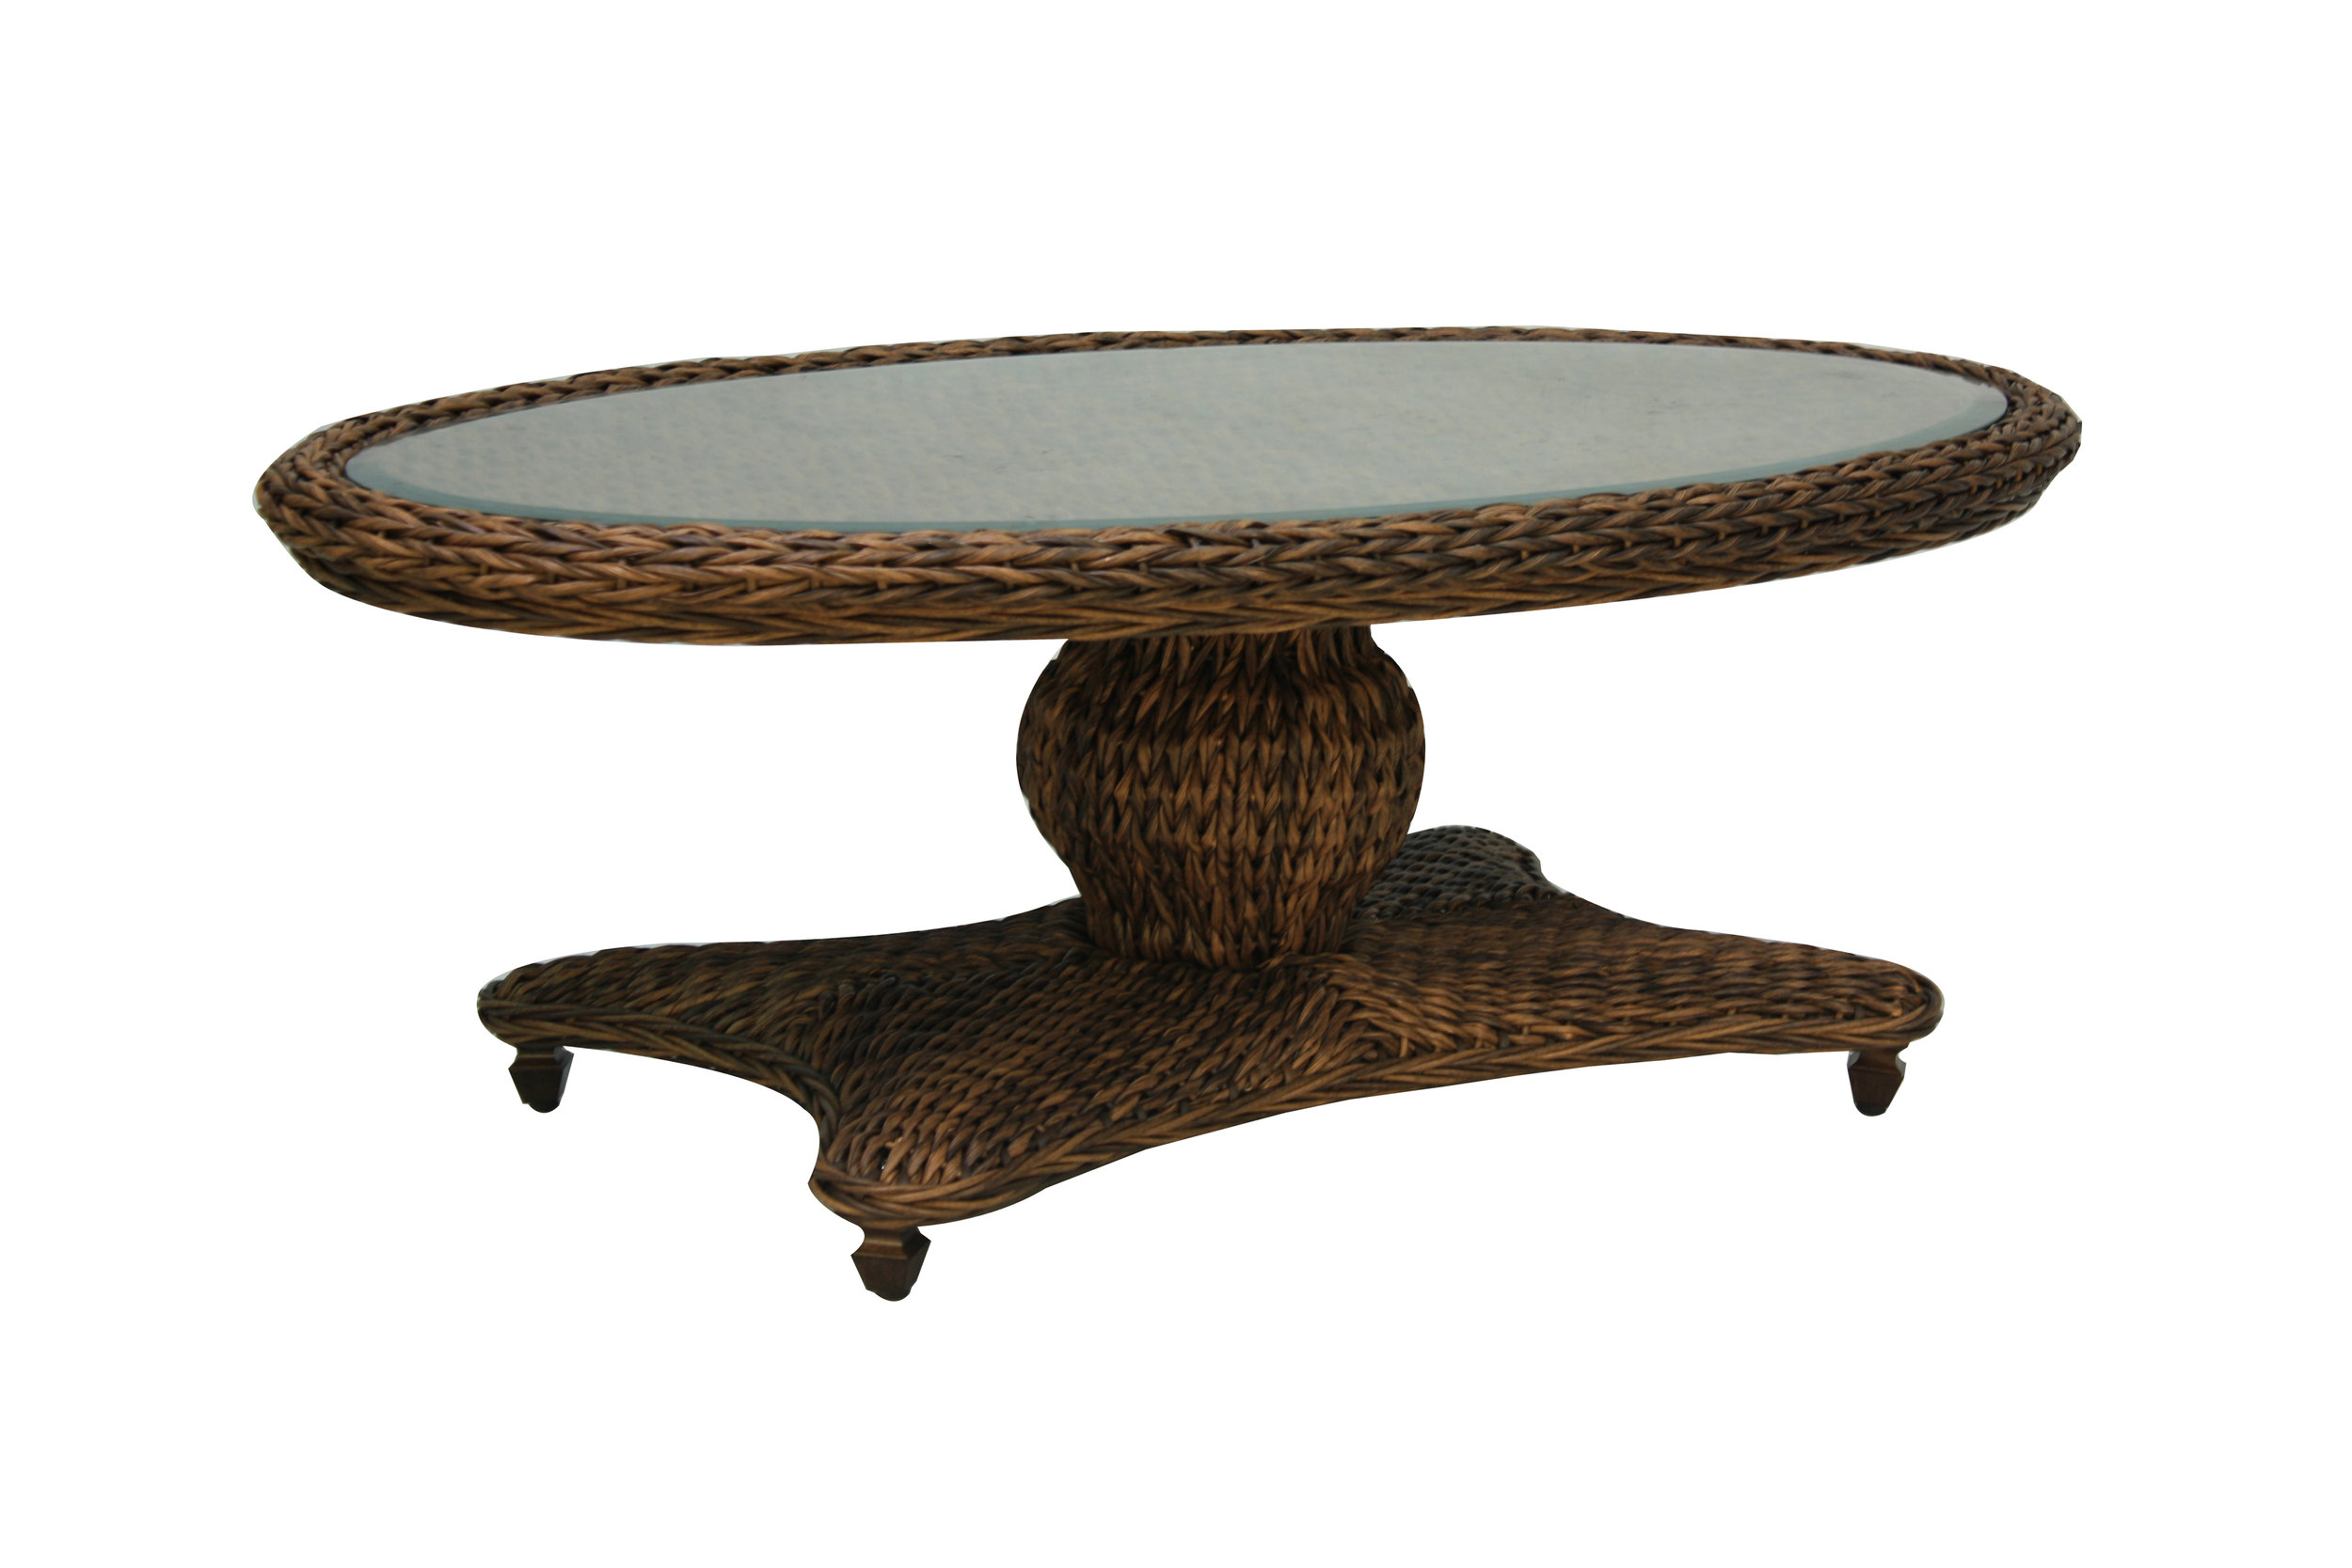 "973834 Antigua Coffee Table  *see Book  (973834TW Antigua Woven Top & Glass) (973834B Antigua Coffee Table Base)  30.1"" x 52.1"" x 21.9"""